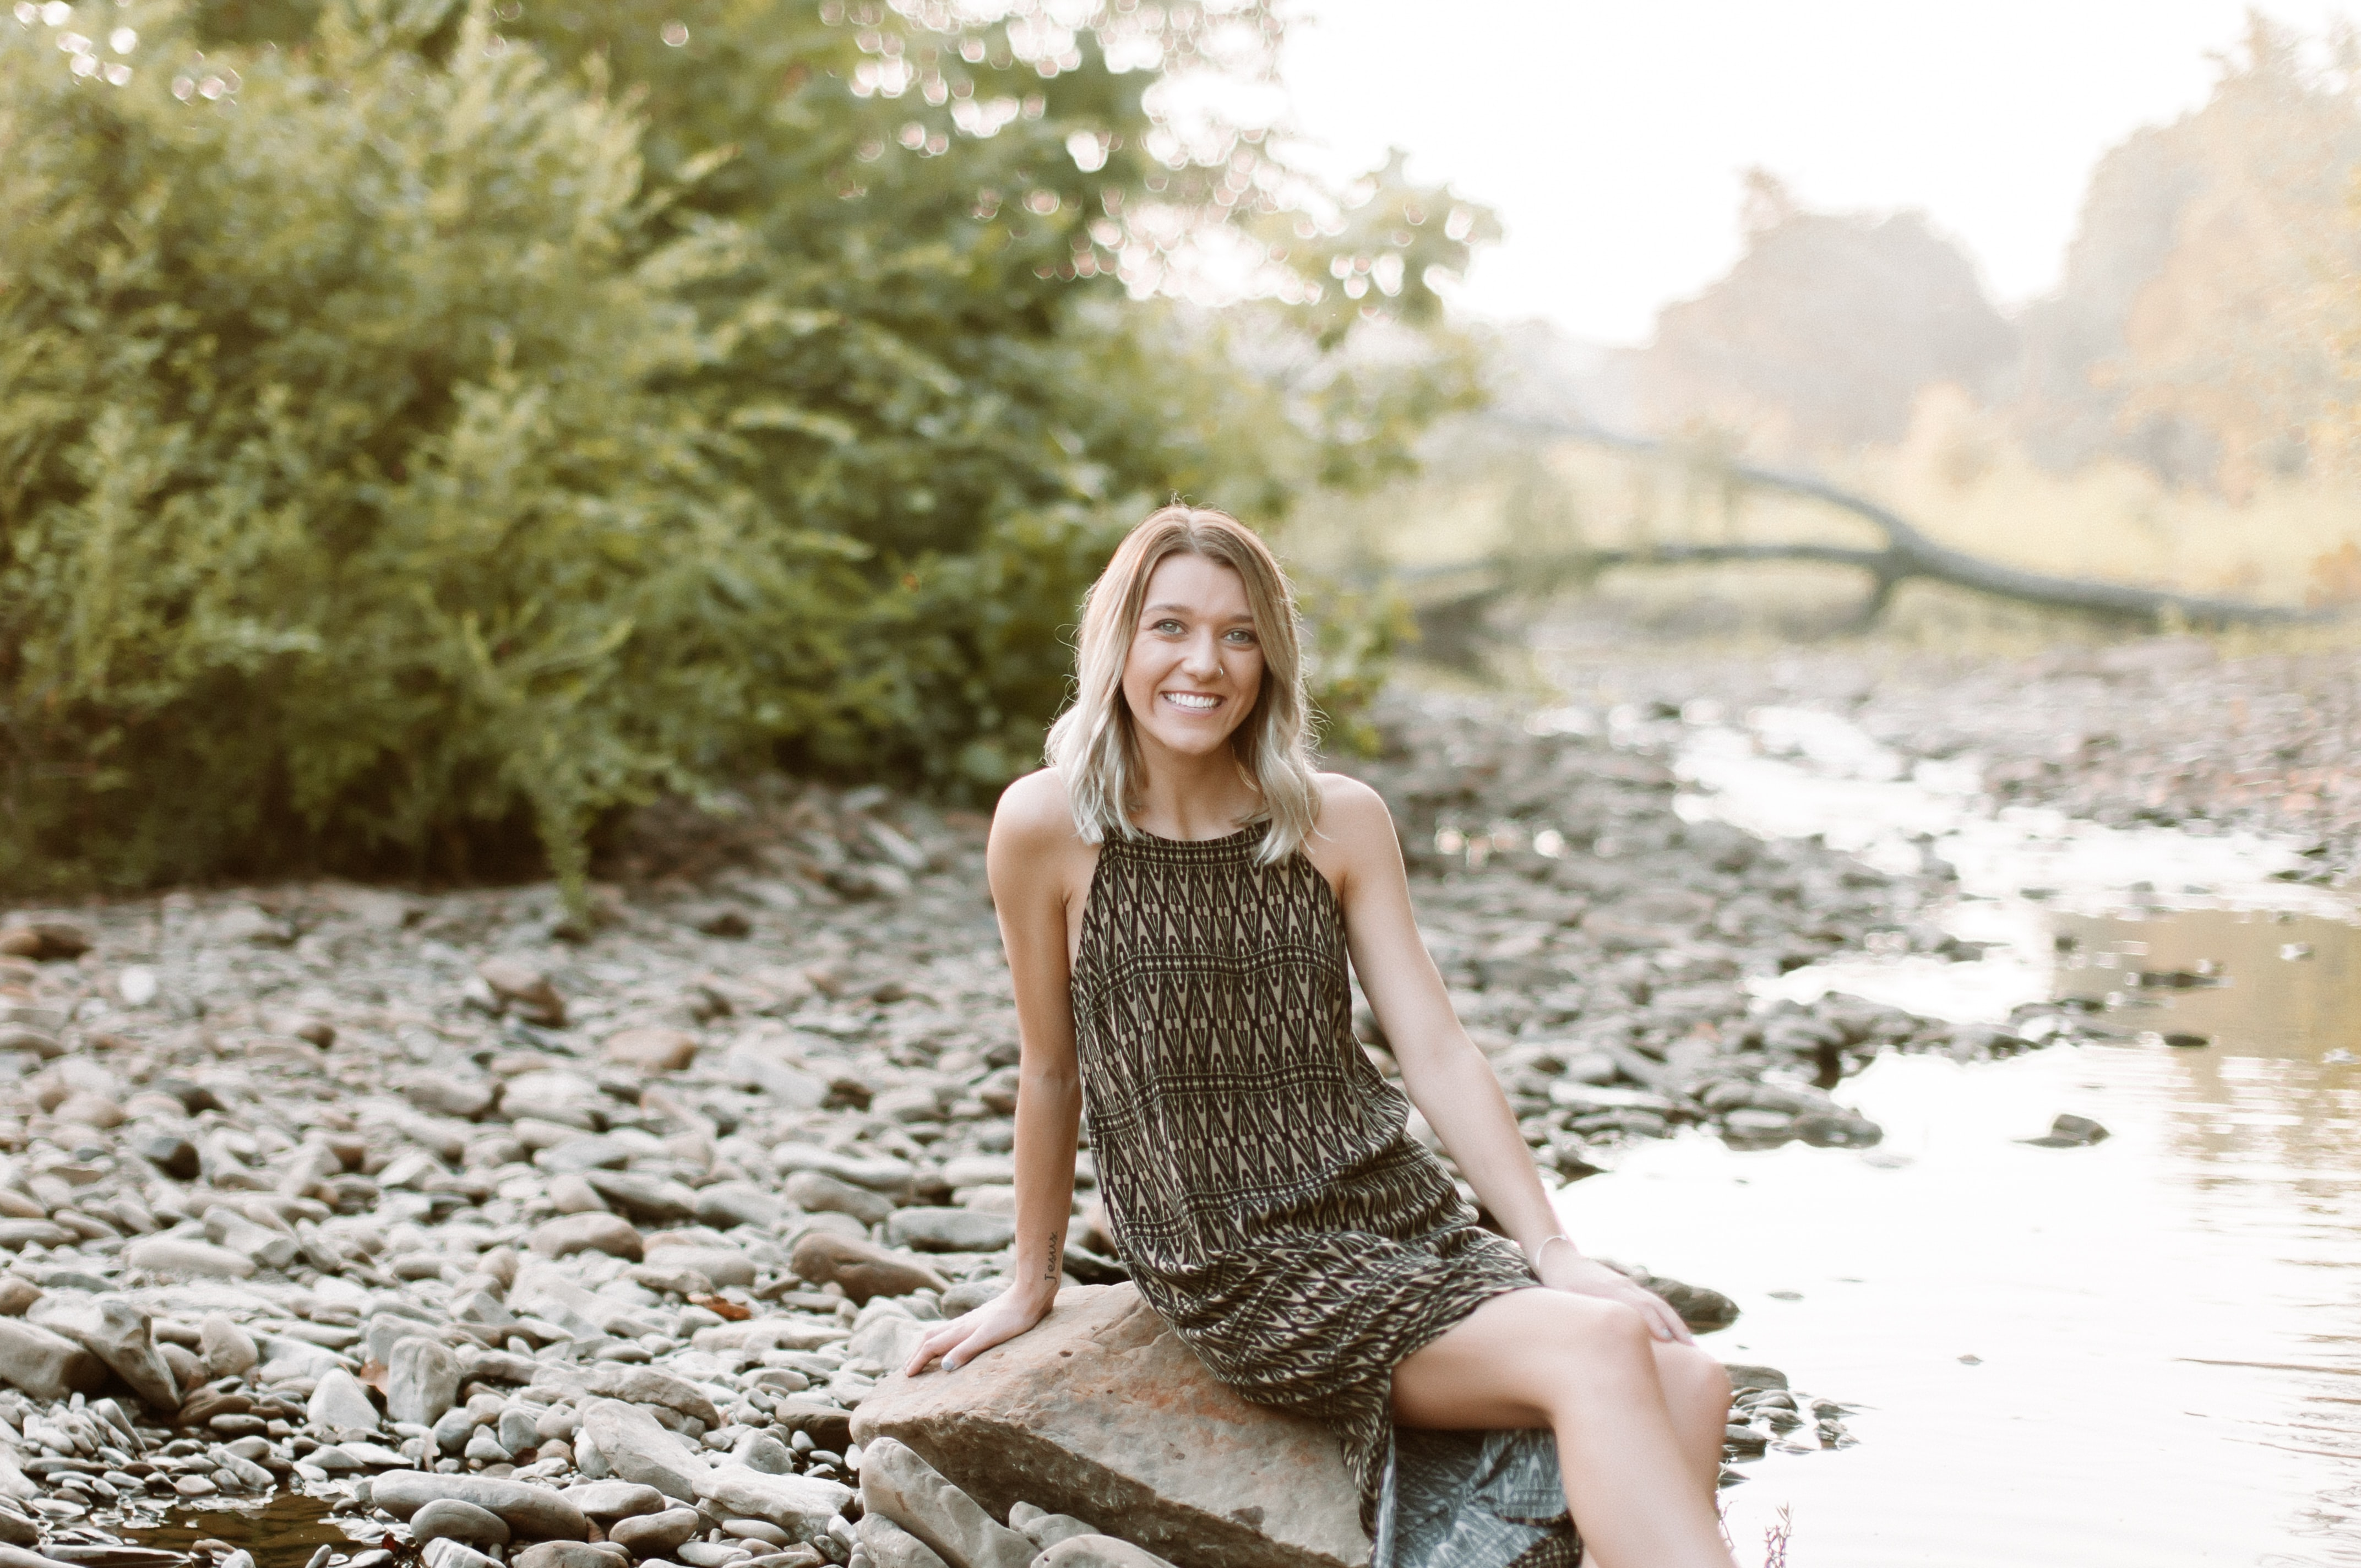 smiling woman sitting on bench beside body of water